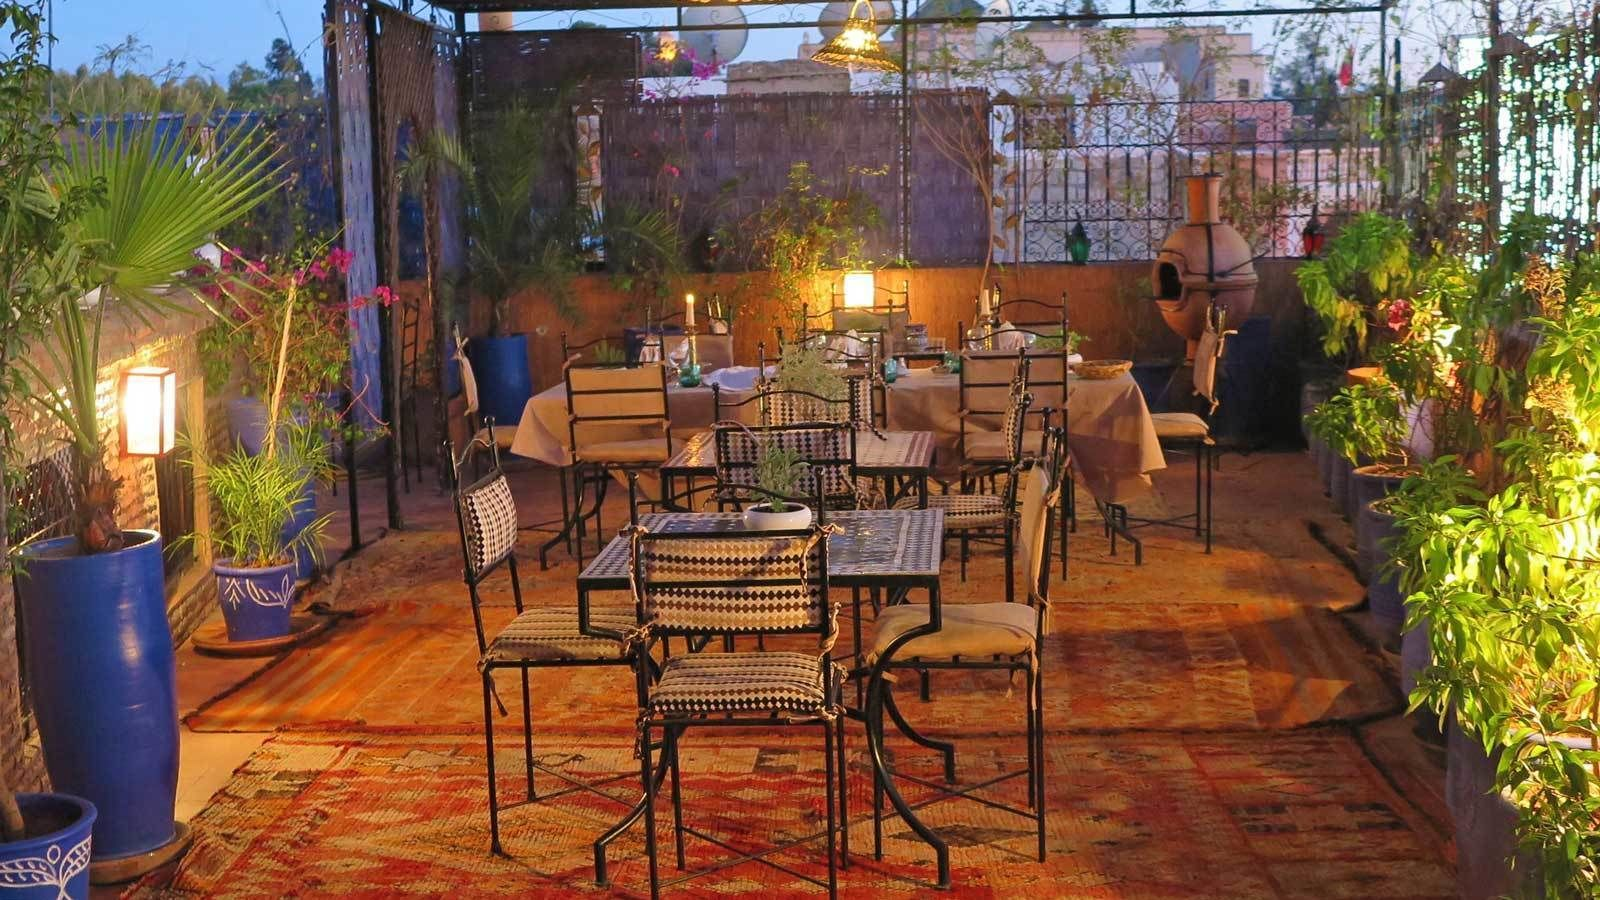 small dining area outside during the evening in Marrakech